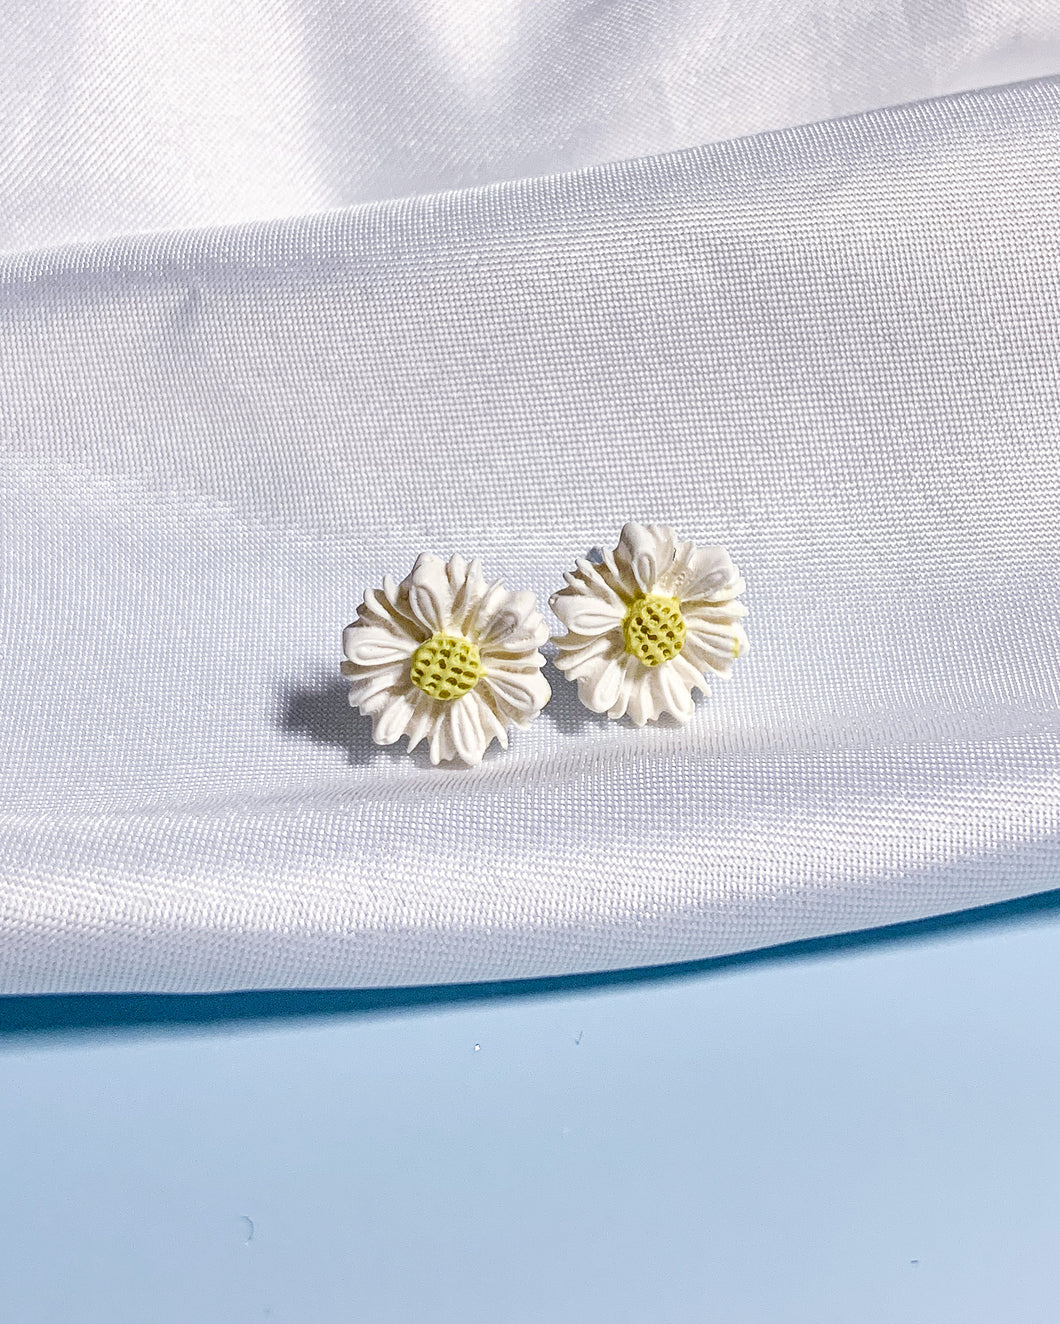 Daisy Dream - #2 Medium Studs